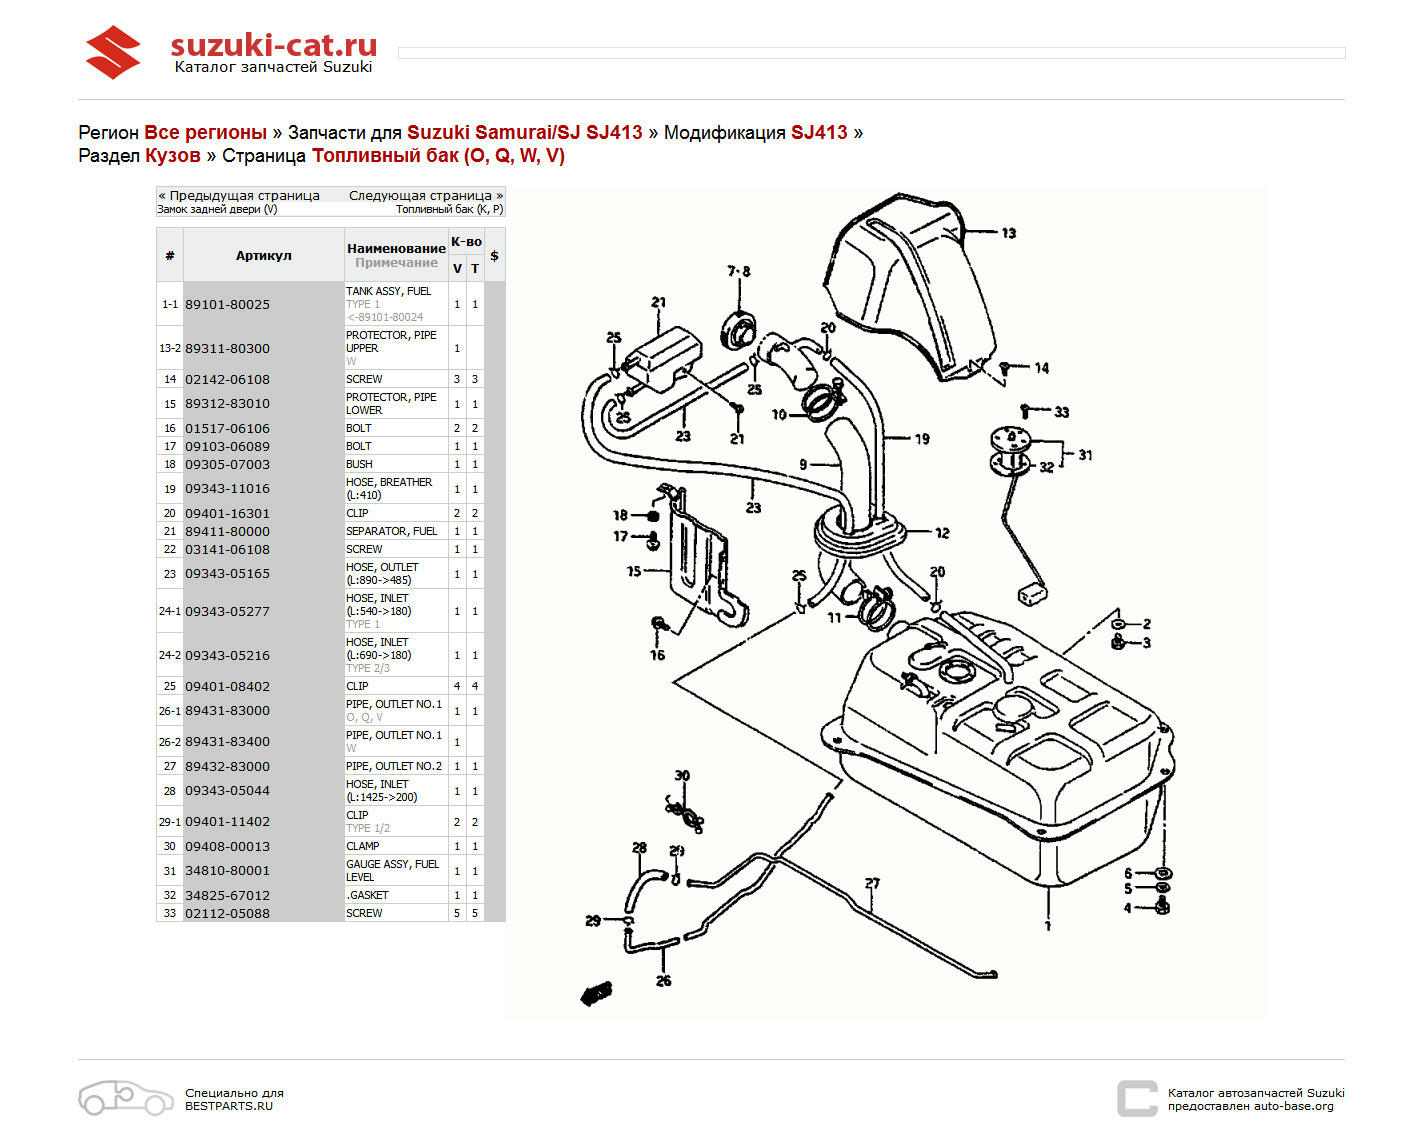 Mazda Rx7 Fuse Box Diagram. Mazda. Auto Fuse Box Diagram